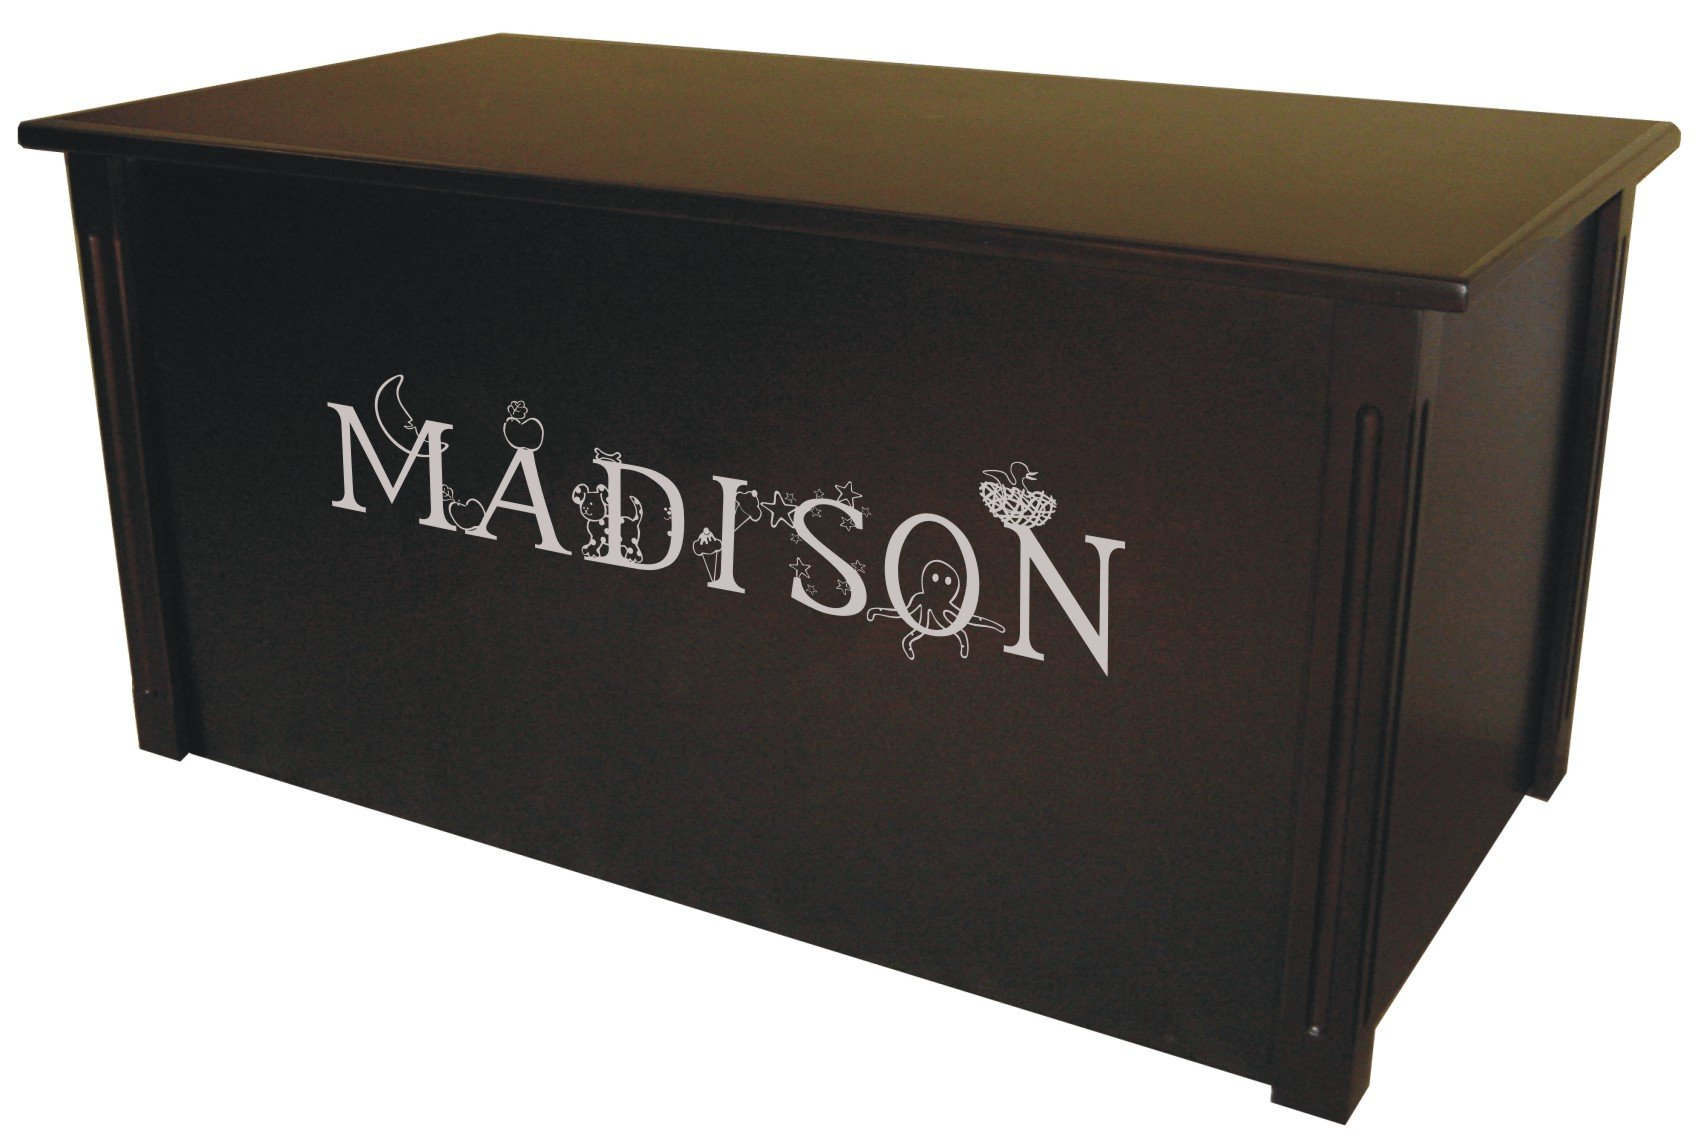 Wood Toy Box, Large Espresso Toy Chest, Personalized Thematic Font, Custom Options (Standard Base - Silver Lettering)